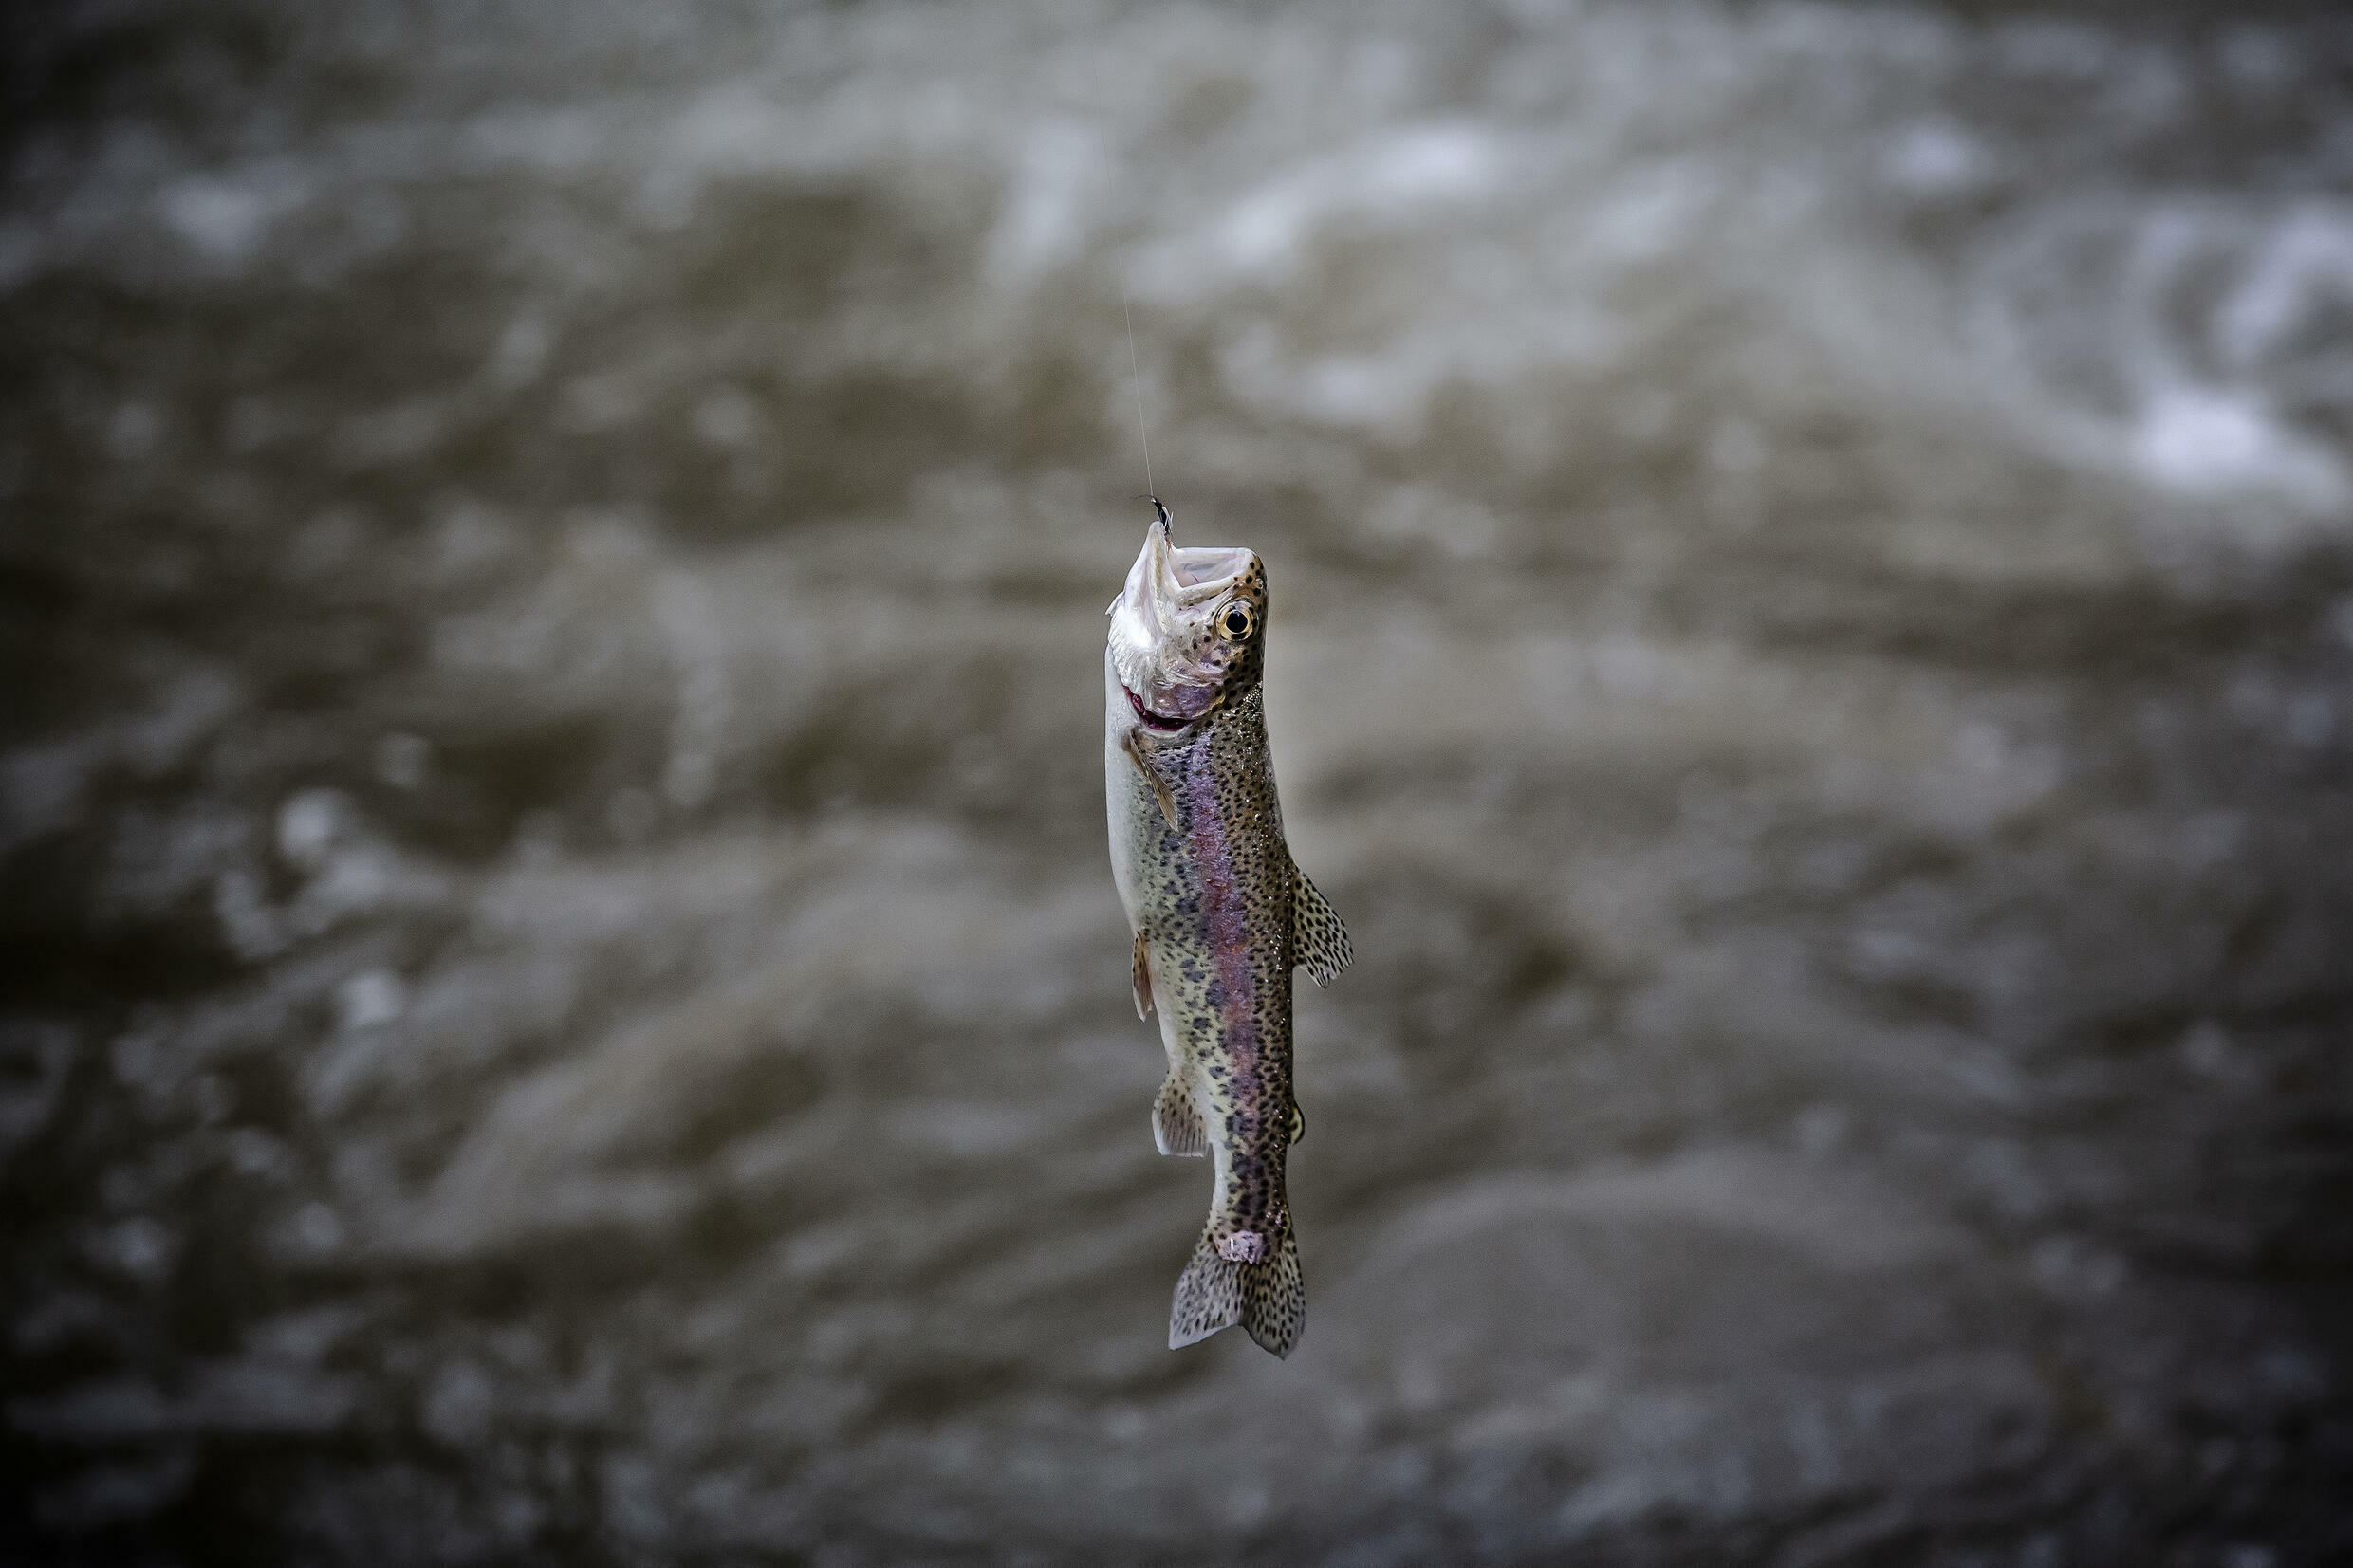 The British introduced trout to rivers in Kenya in the early 1900s.